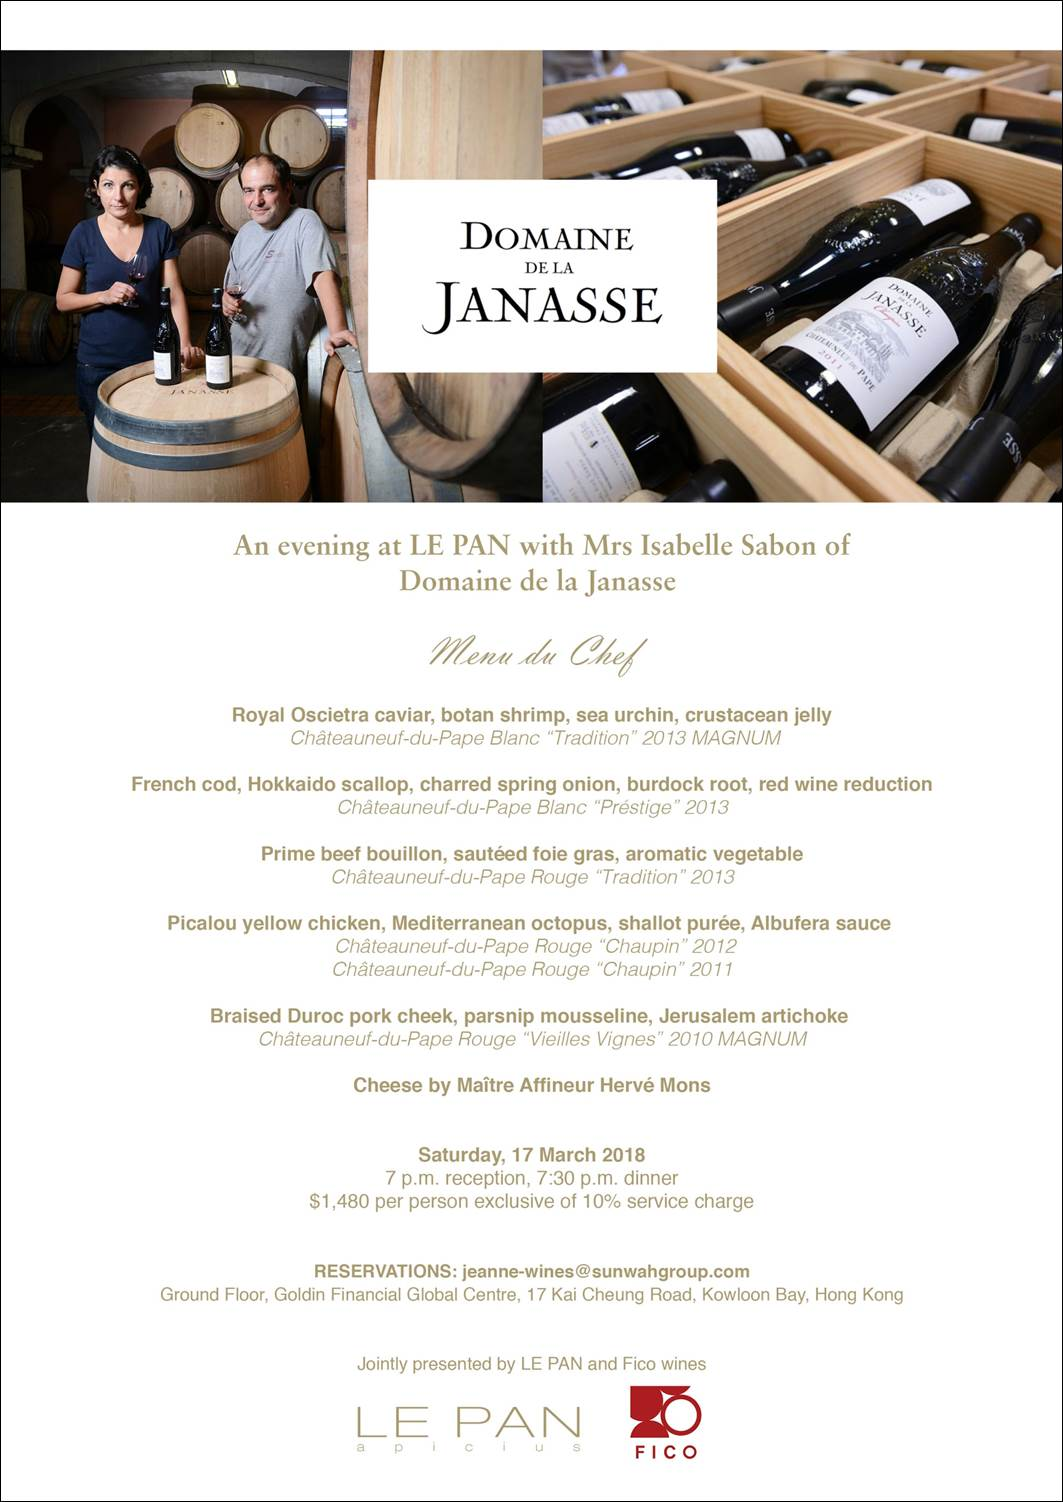 DOMAINE-DE-LA-JANASSE-WINE-DINNER.jpg